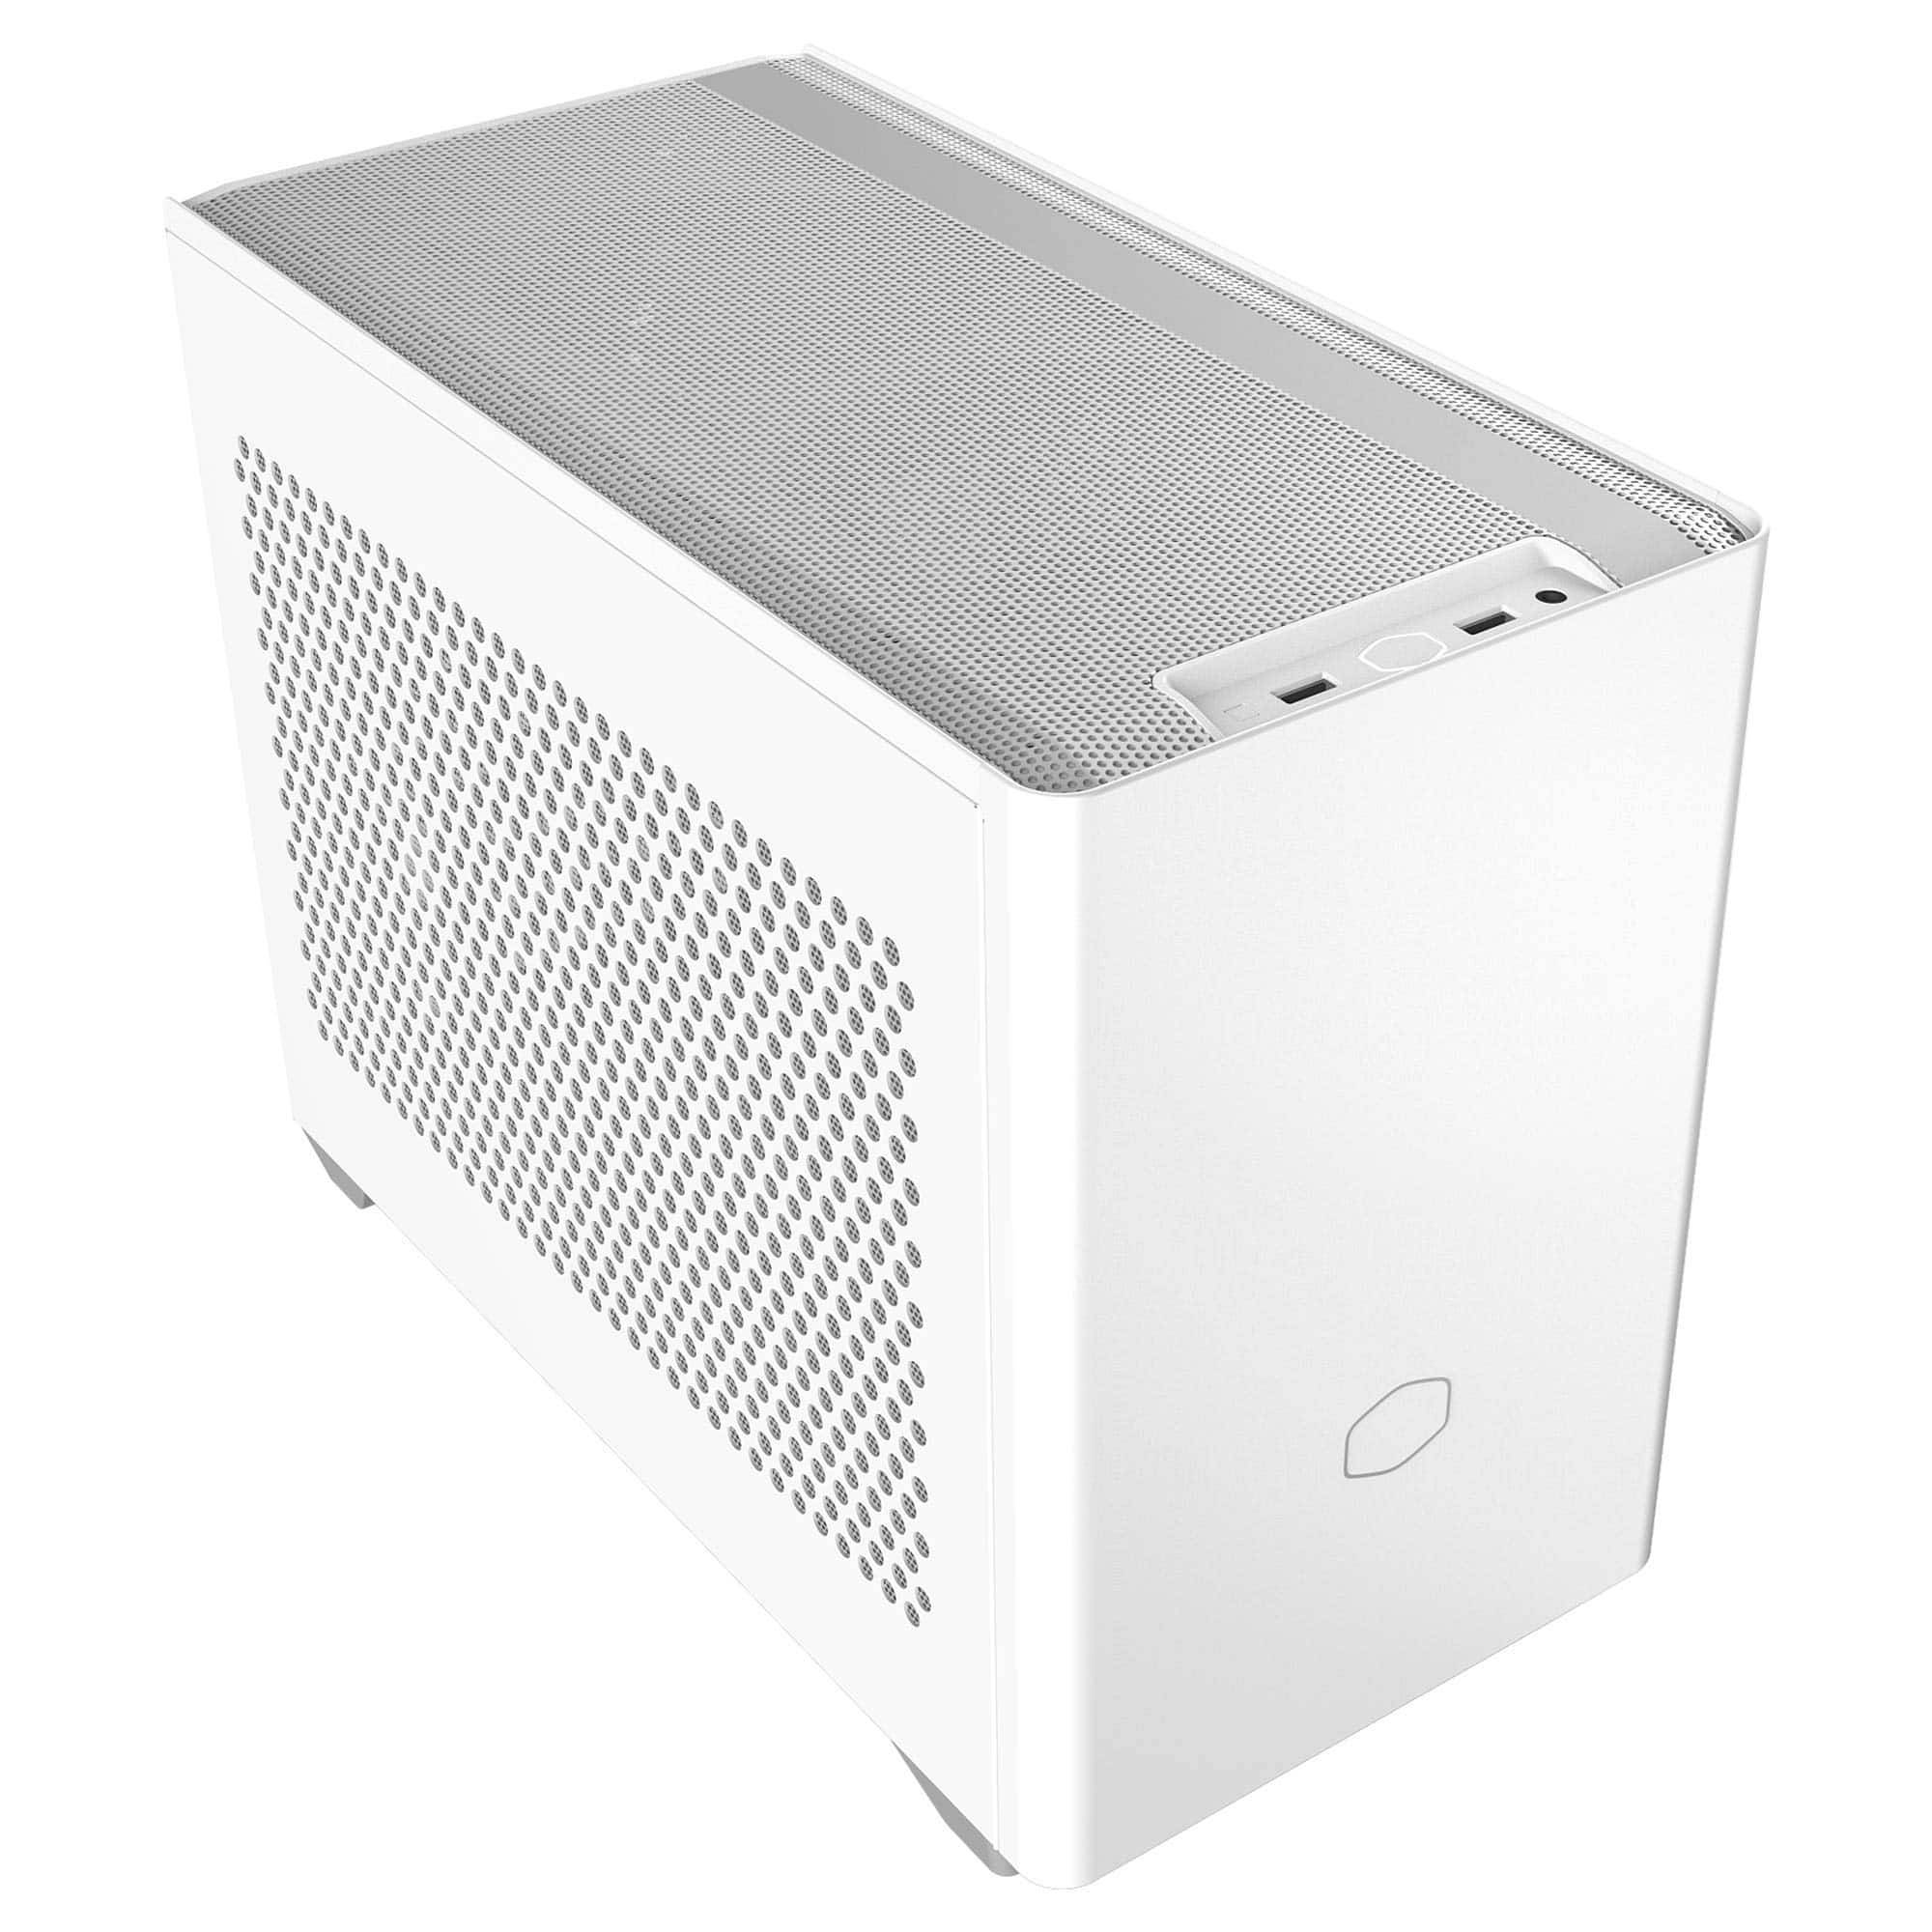 Cooler Master NR200 in white for $68.26 at Amazon